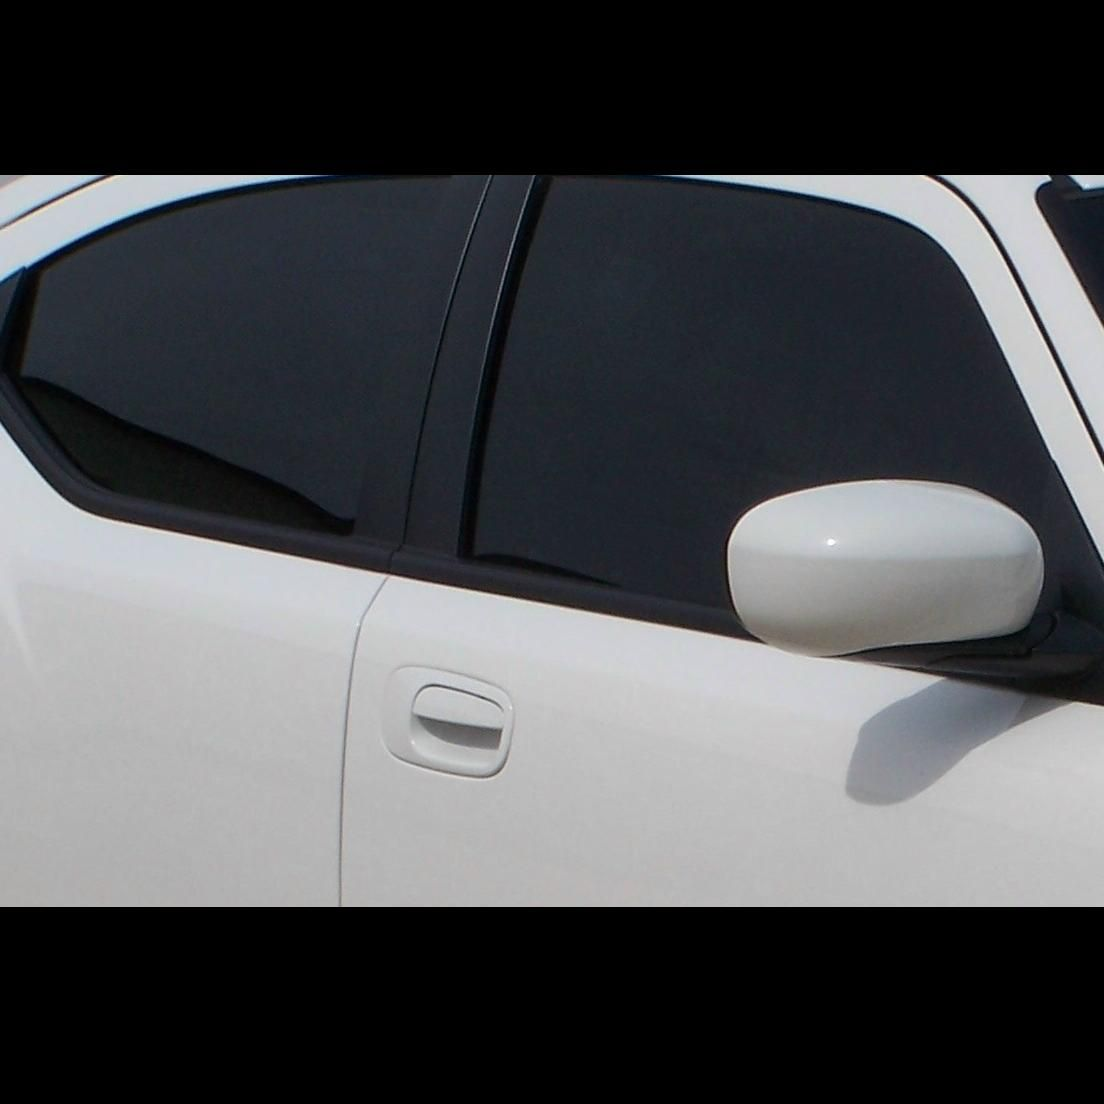 Get Tint Off A Car Window Car Tinted Windows Car Window